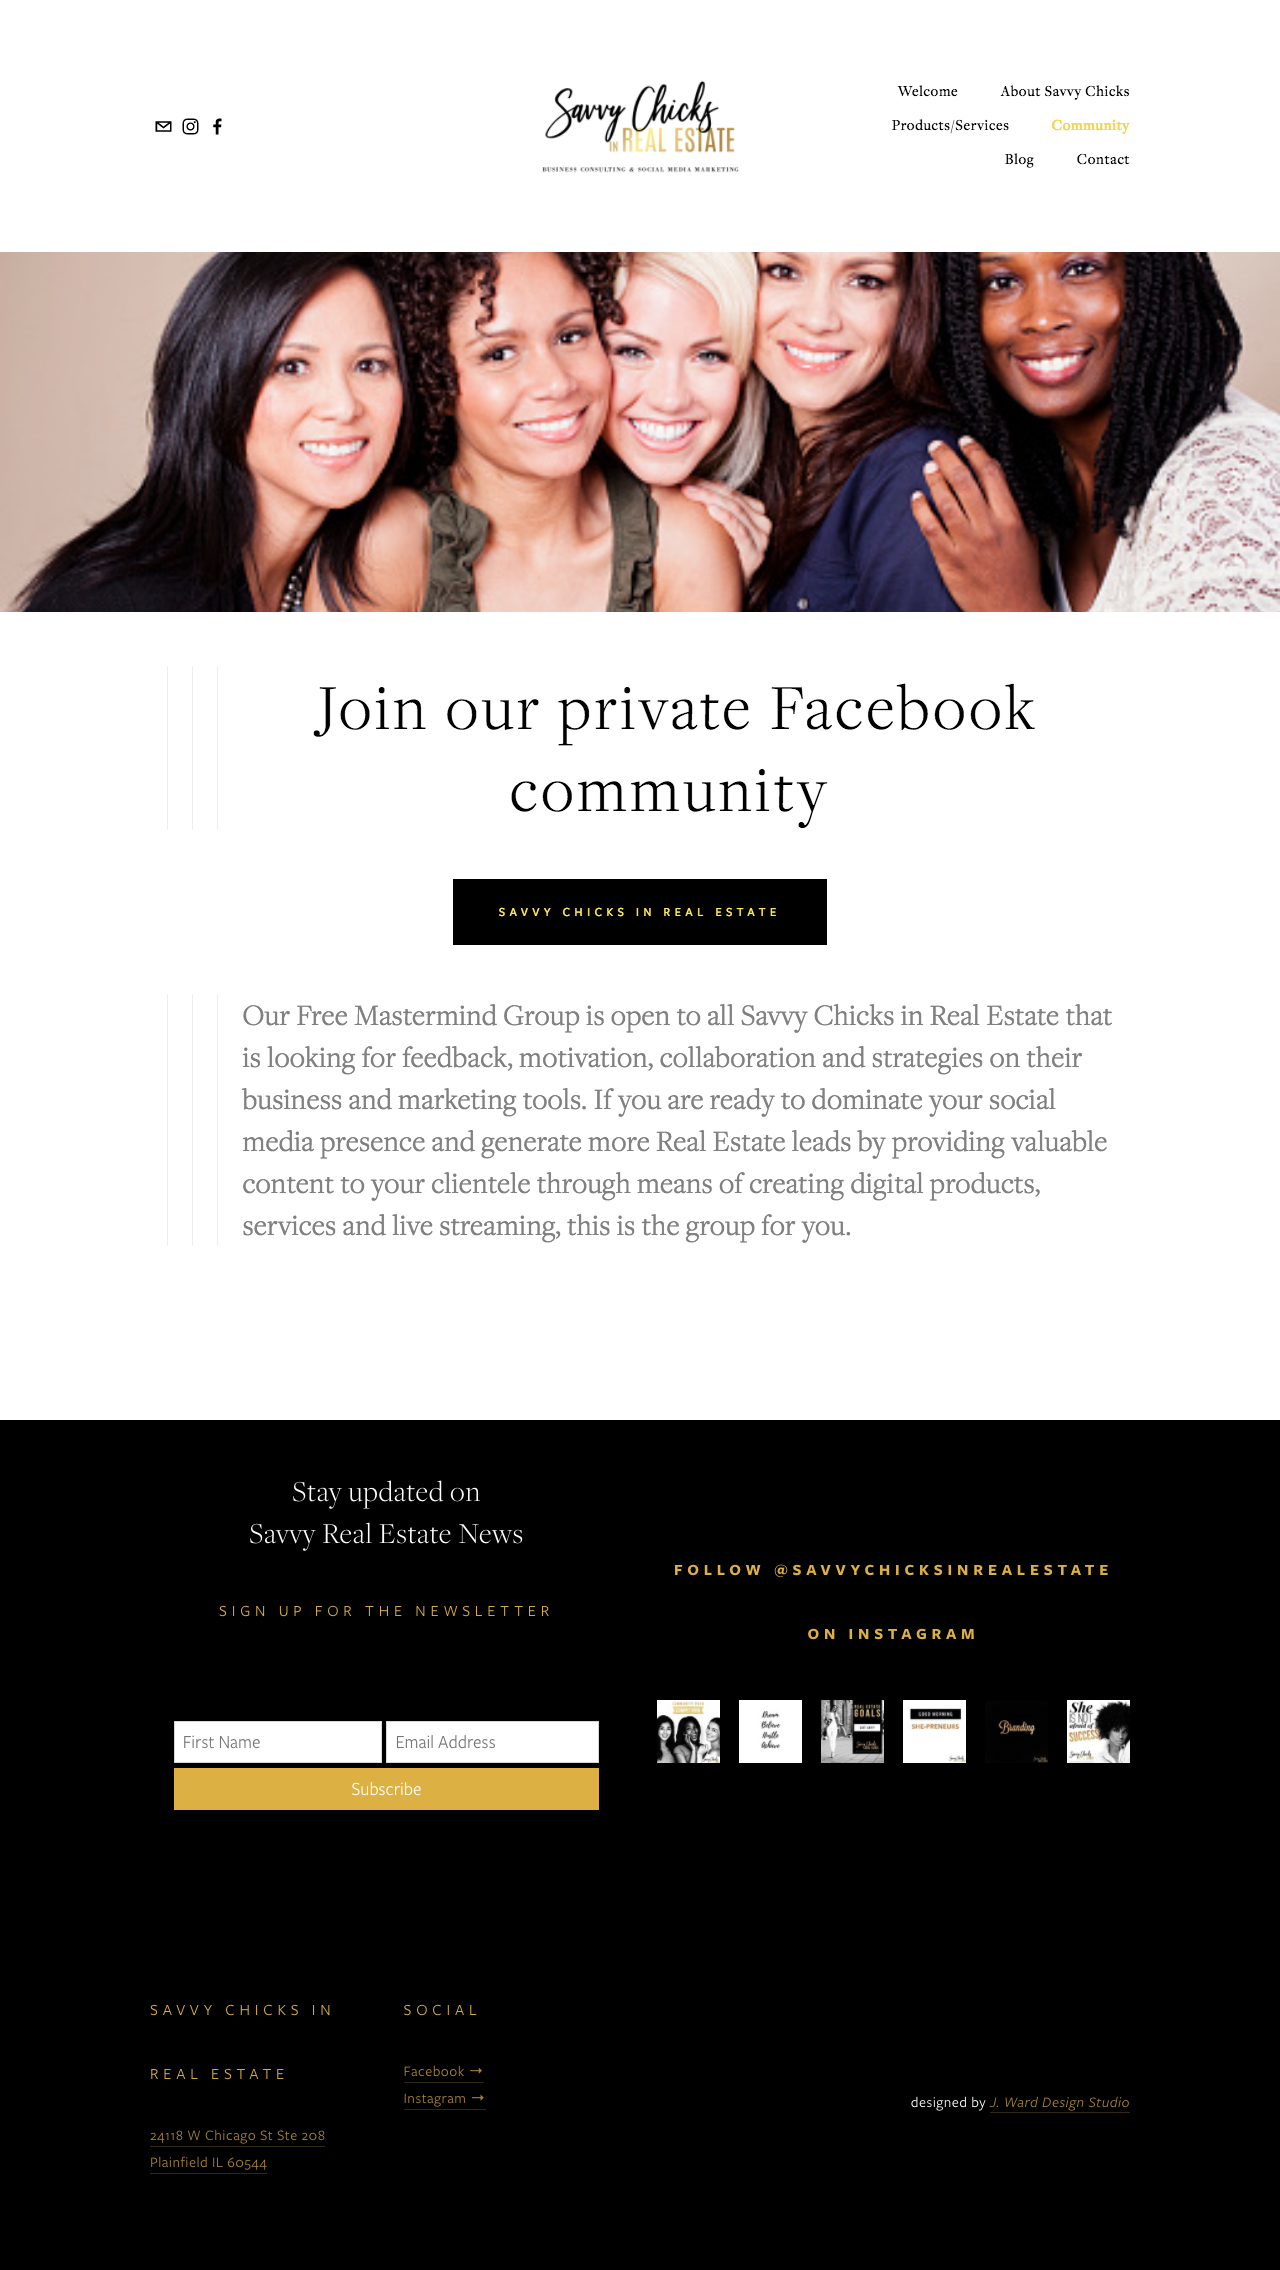 screencapture-savvychicksinrealestate-community.png